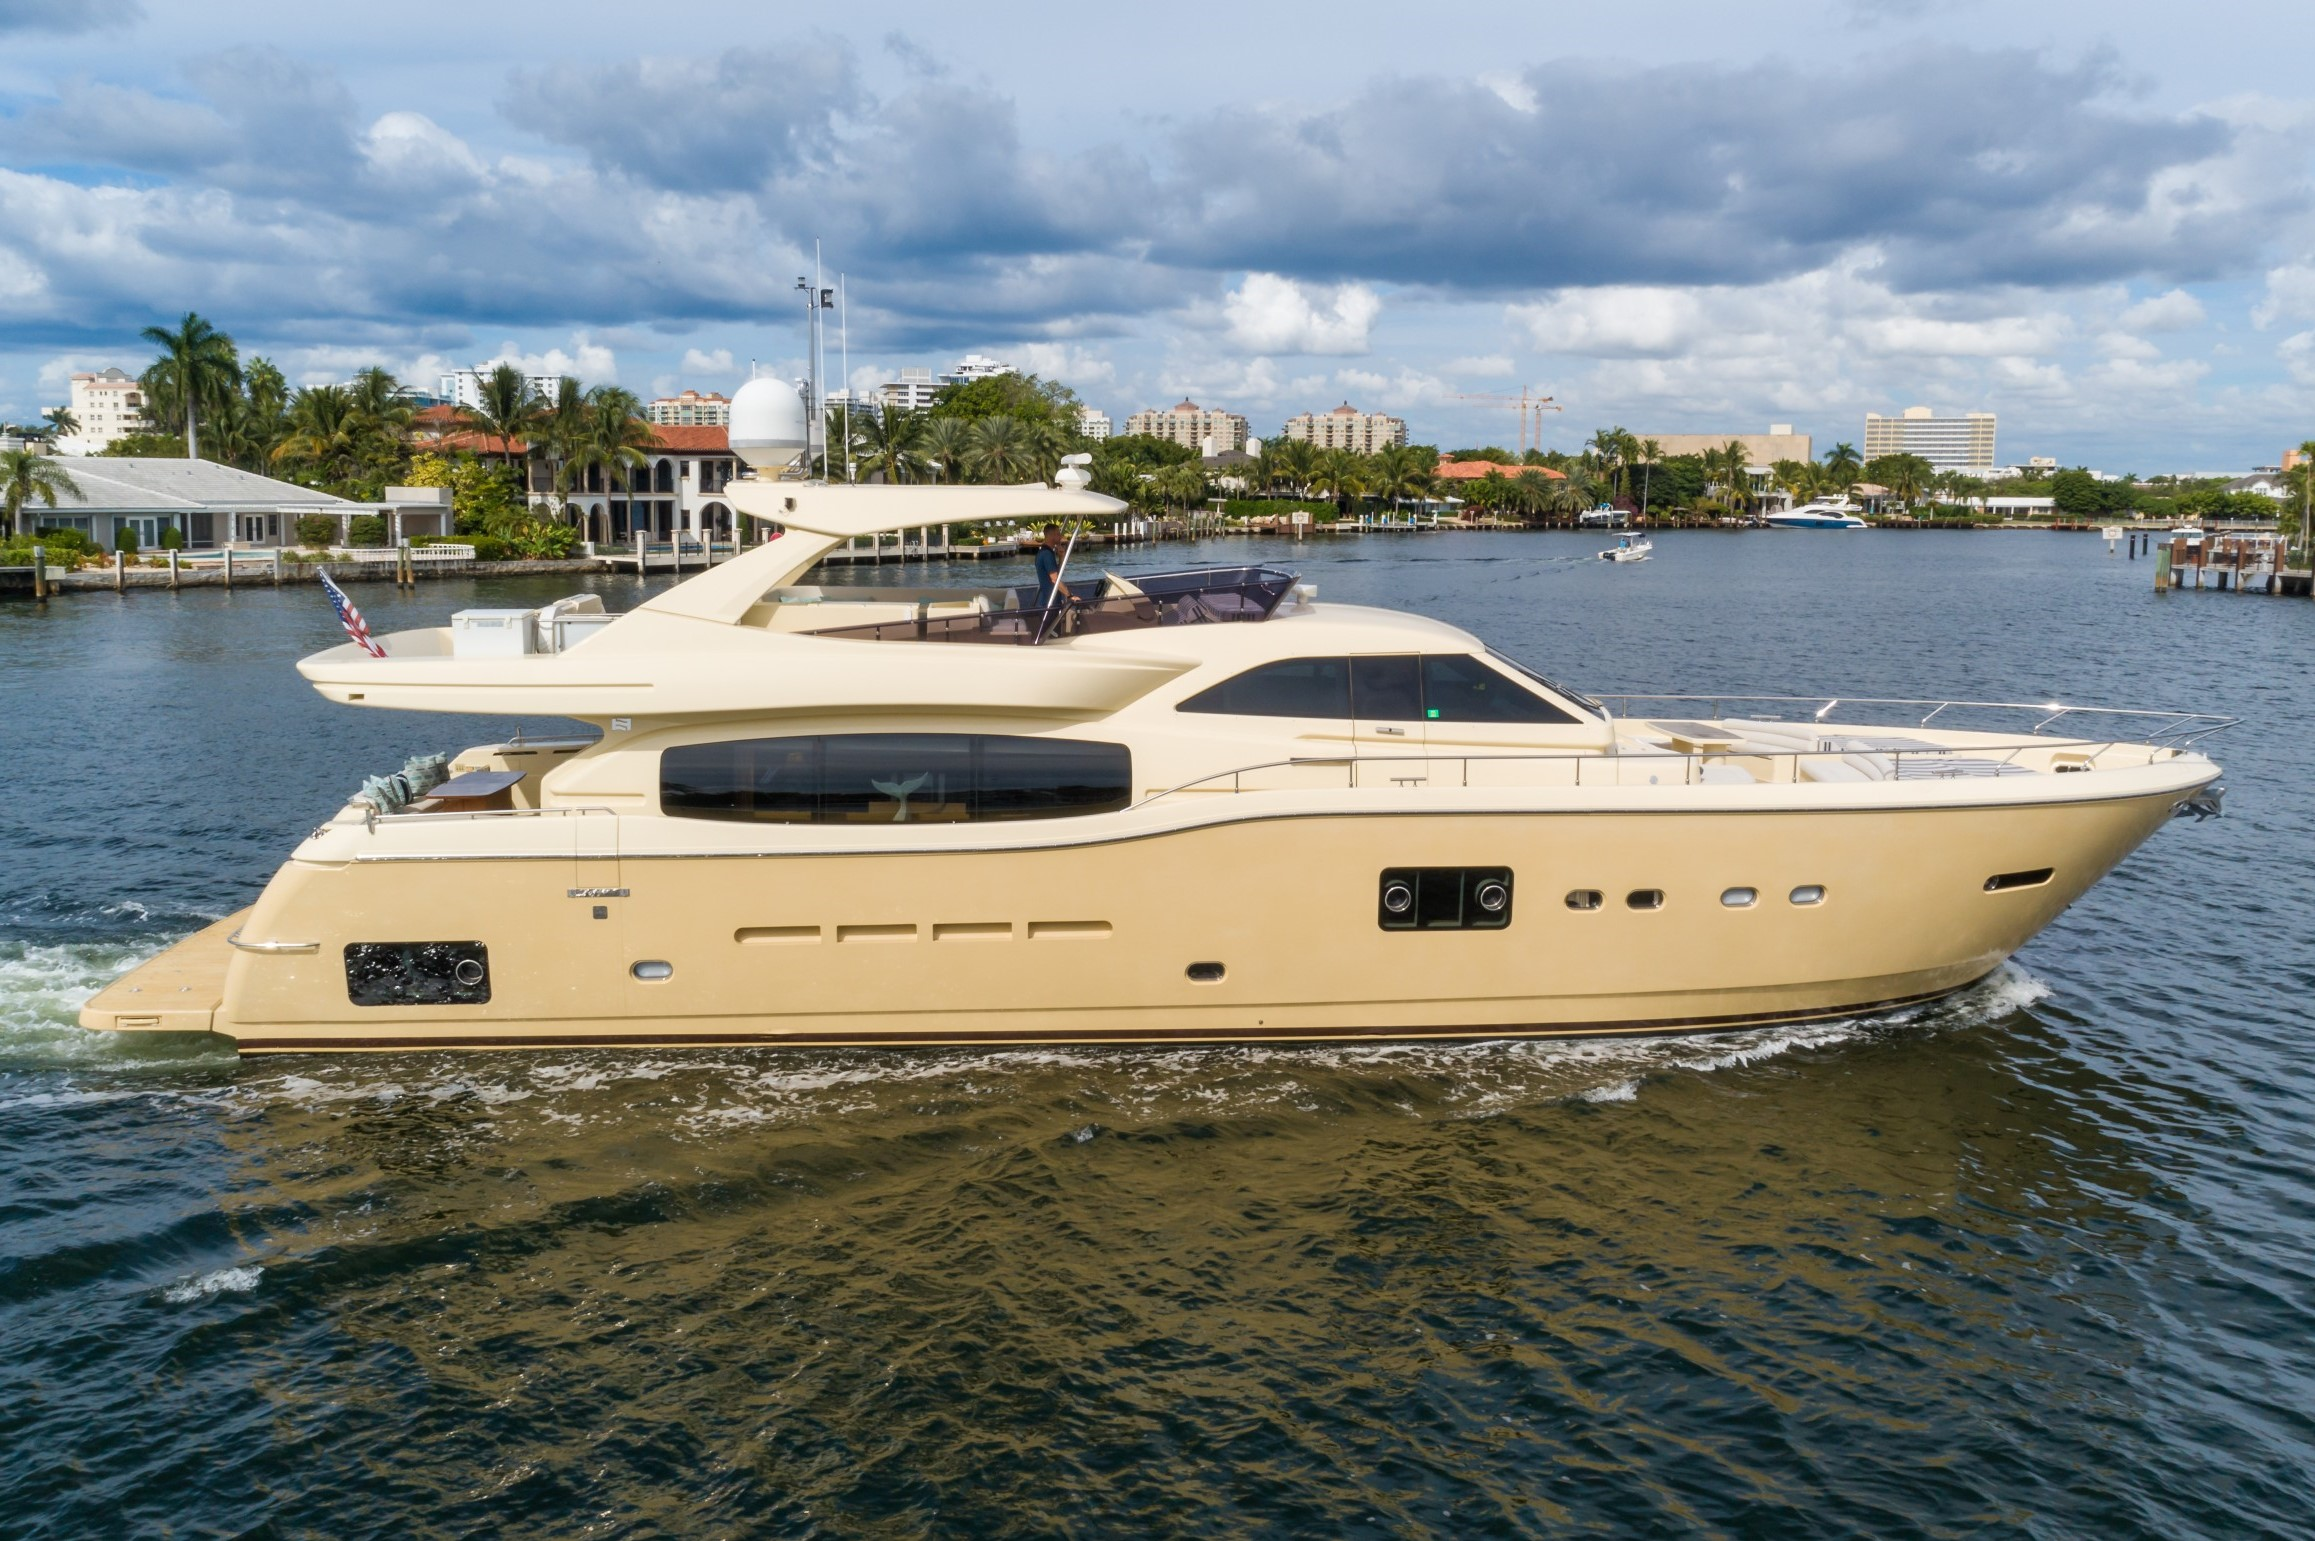 SEVEN DIAMONDS specs with detailed specification and builder summary